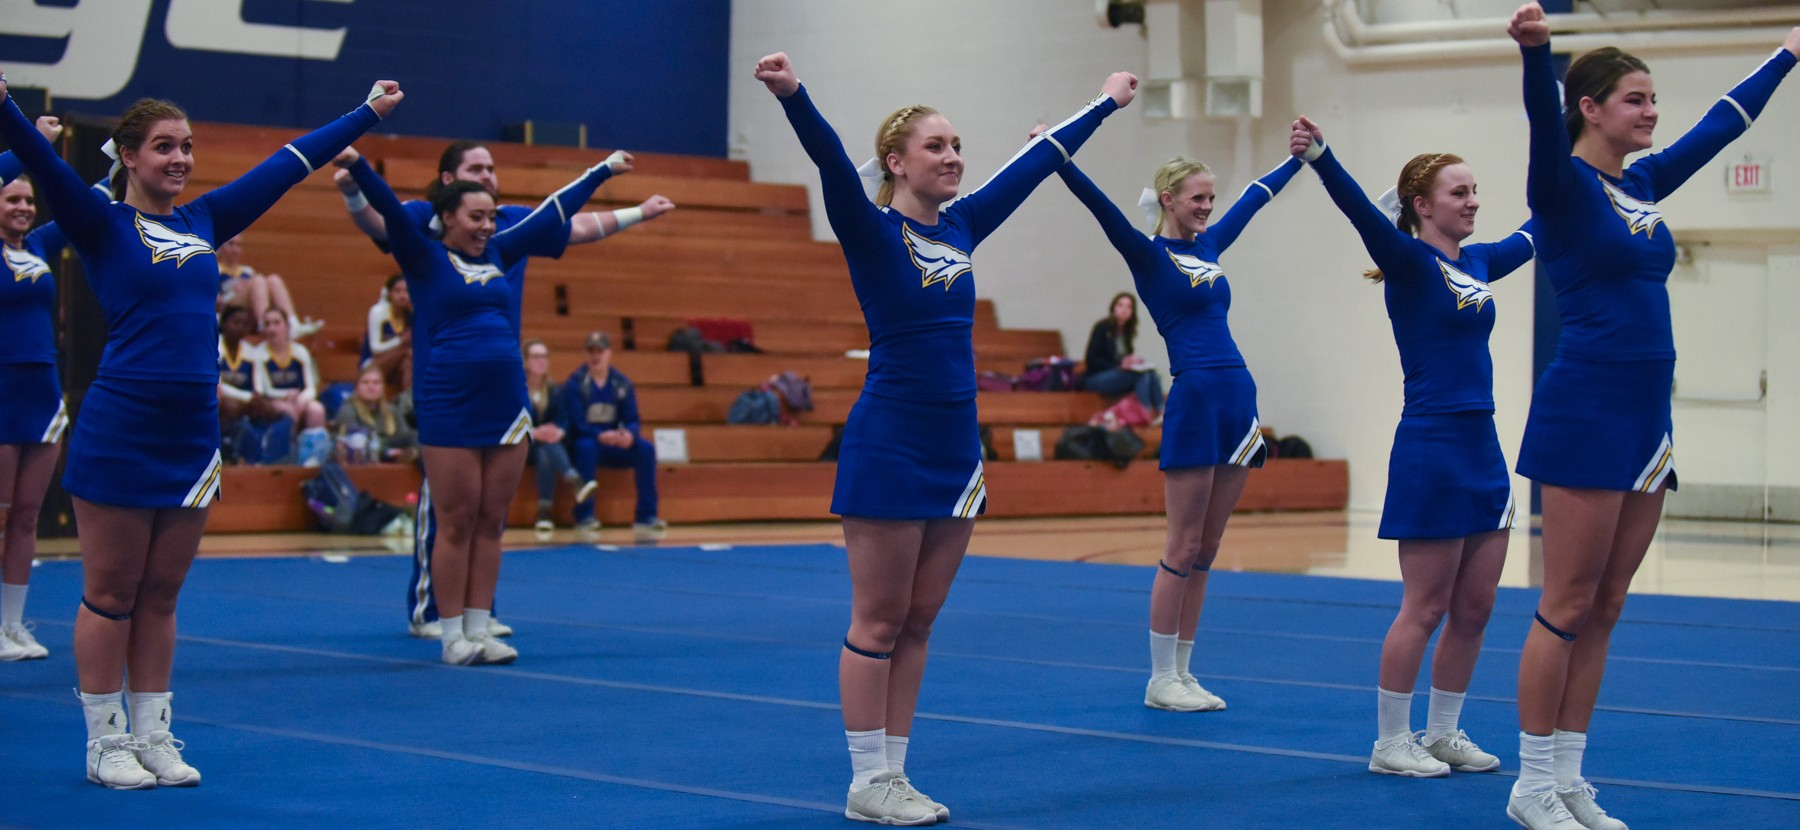 tabor college tabor college set to host kcac cheer dance